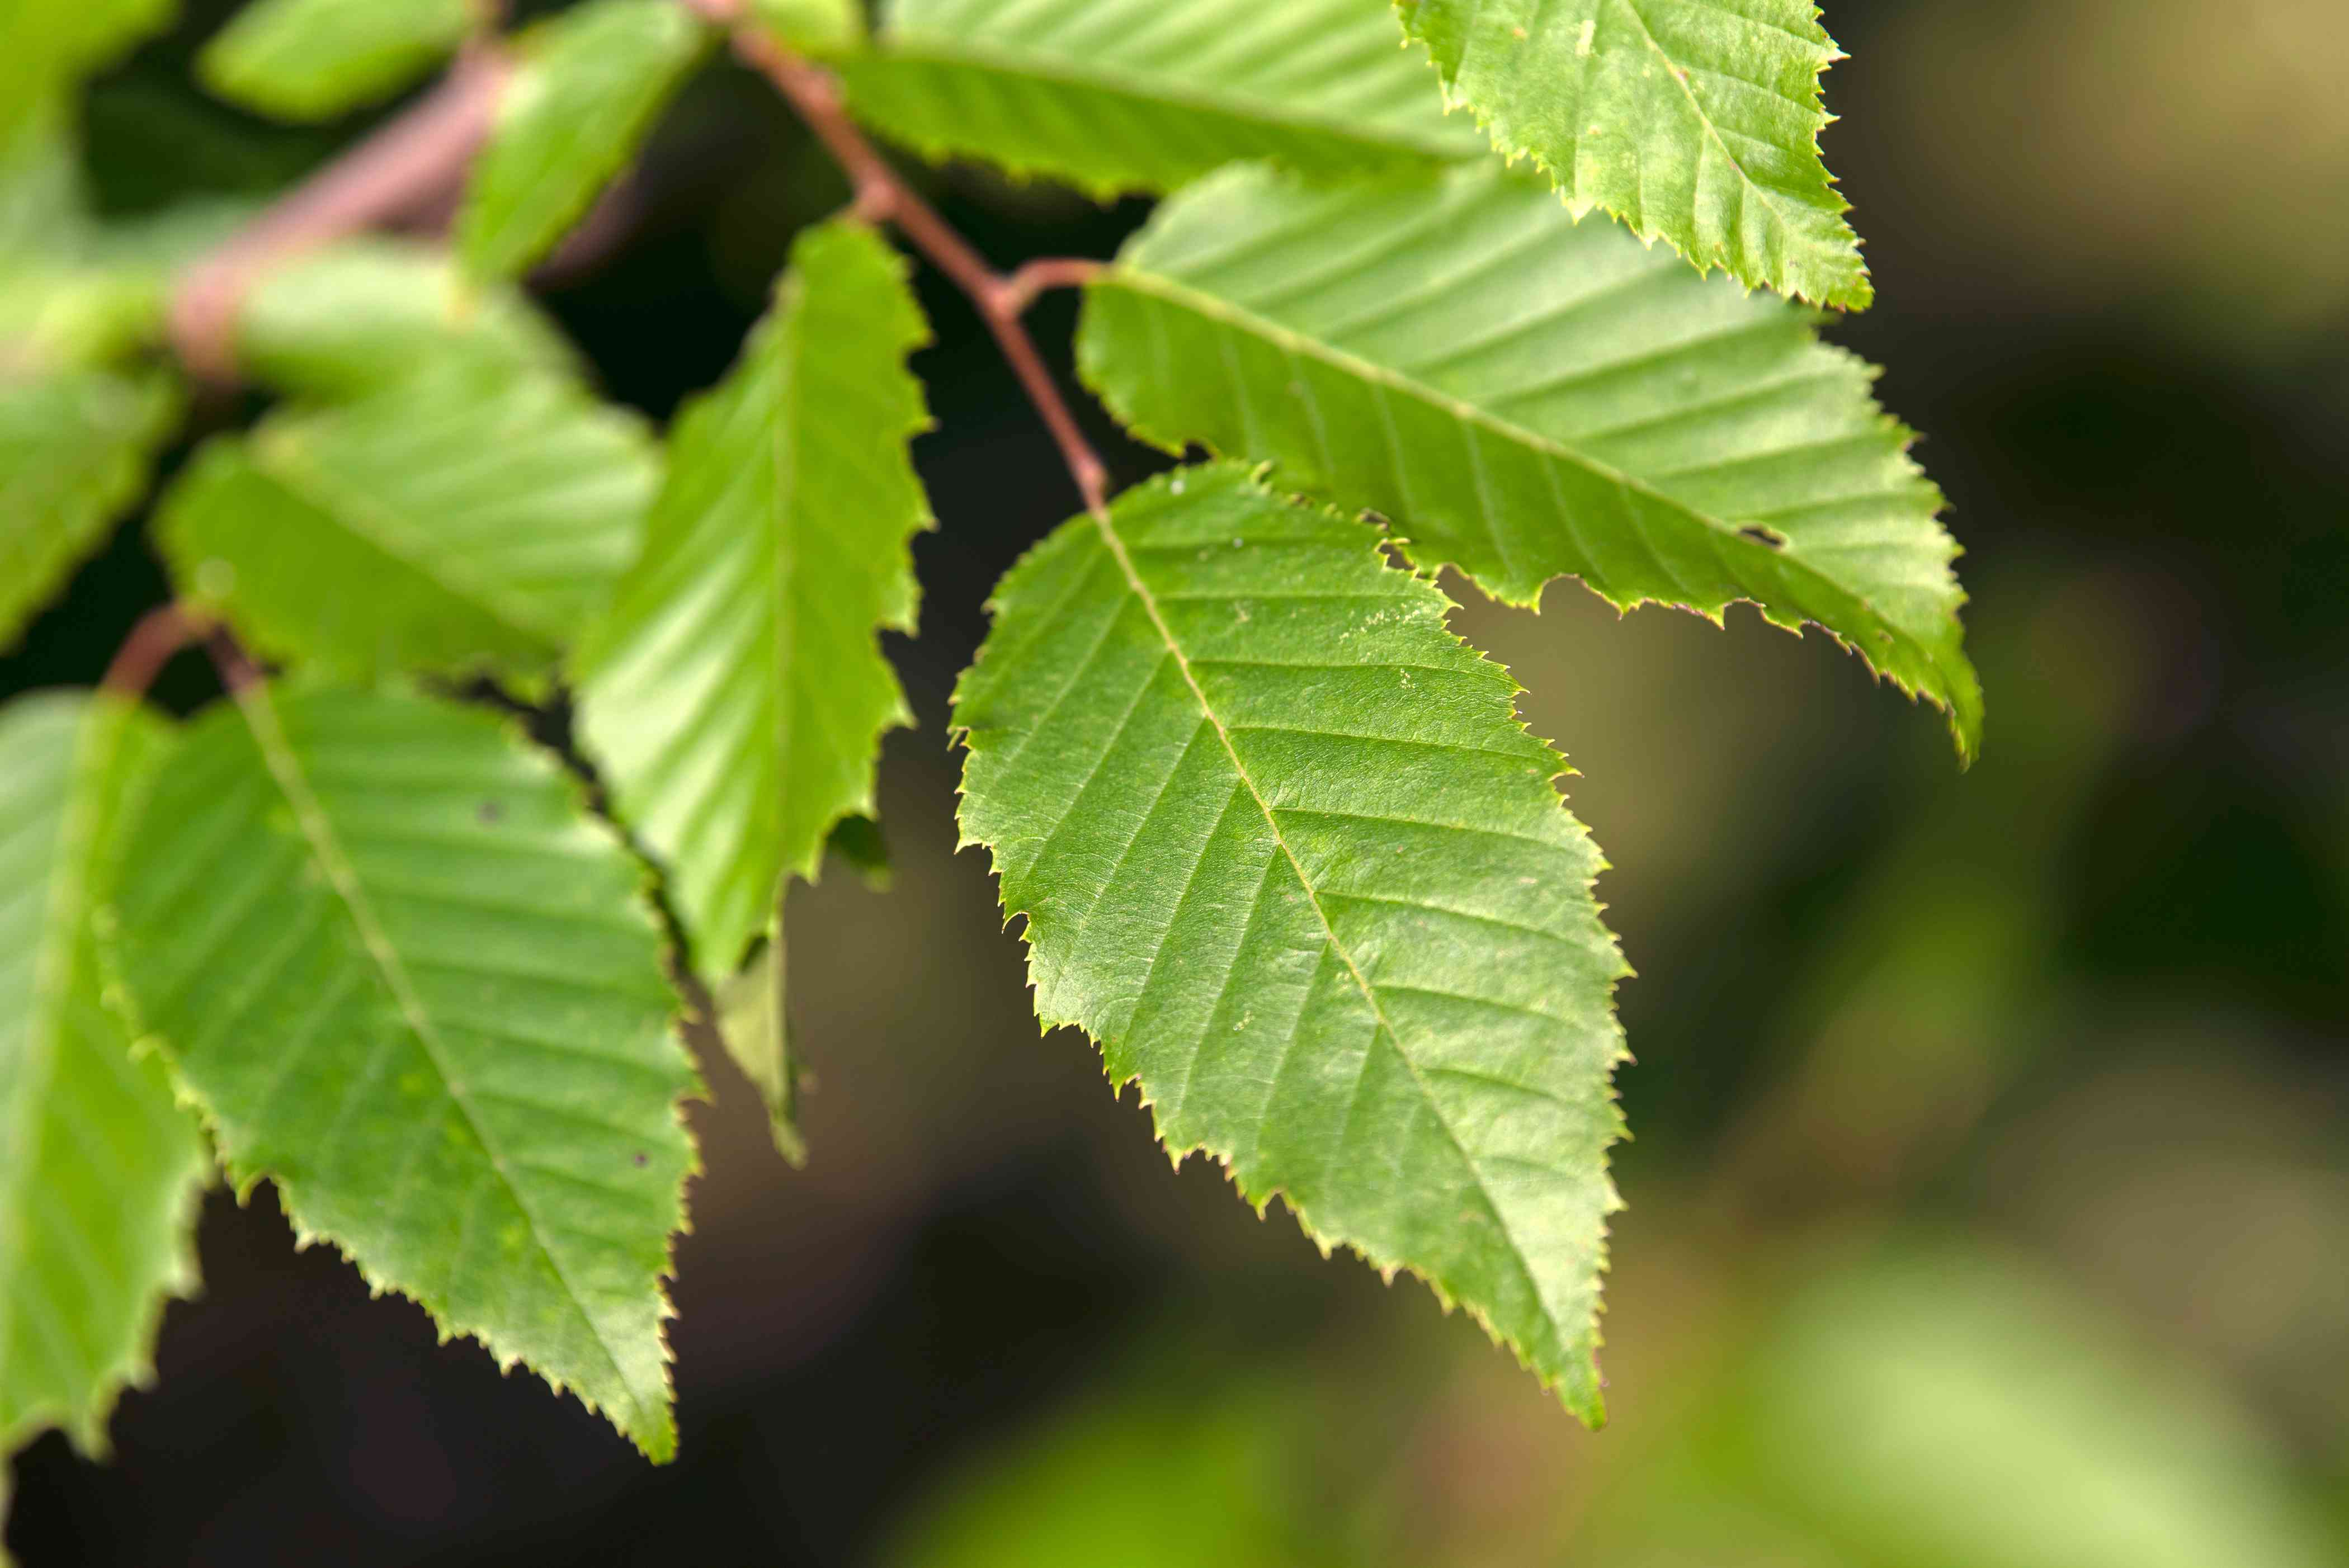 American hornbeam tree branch with ribbed leaves with serrated edges closeup